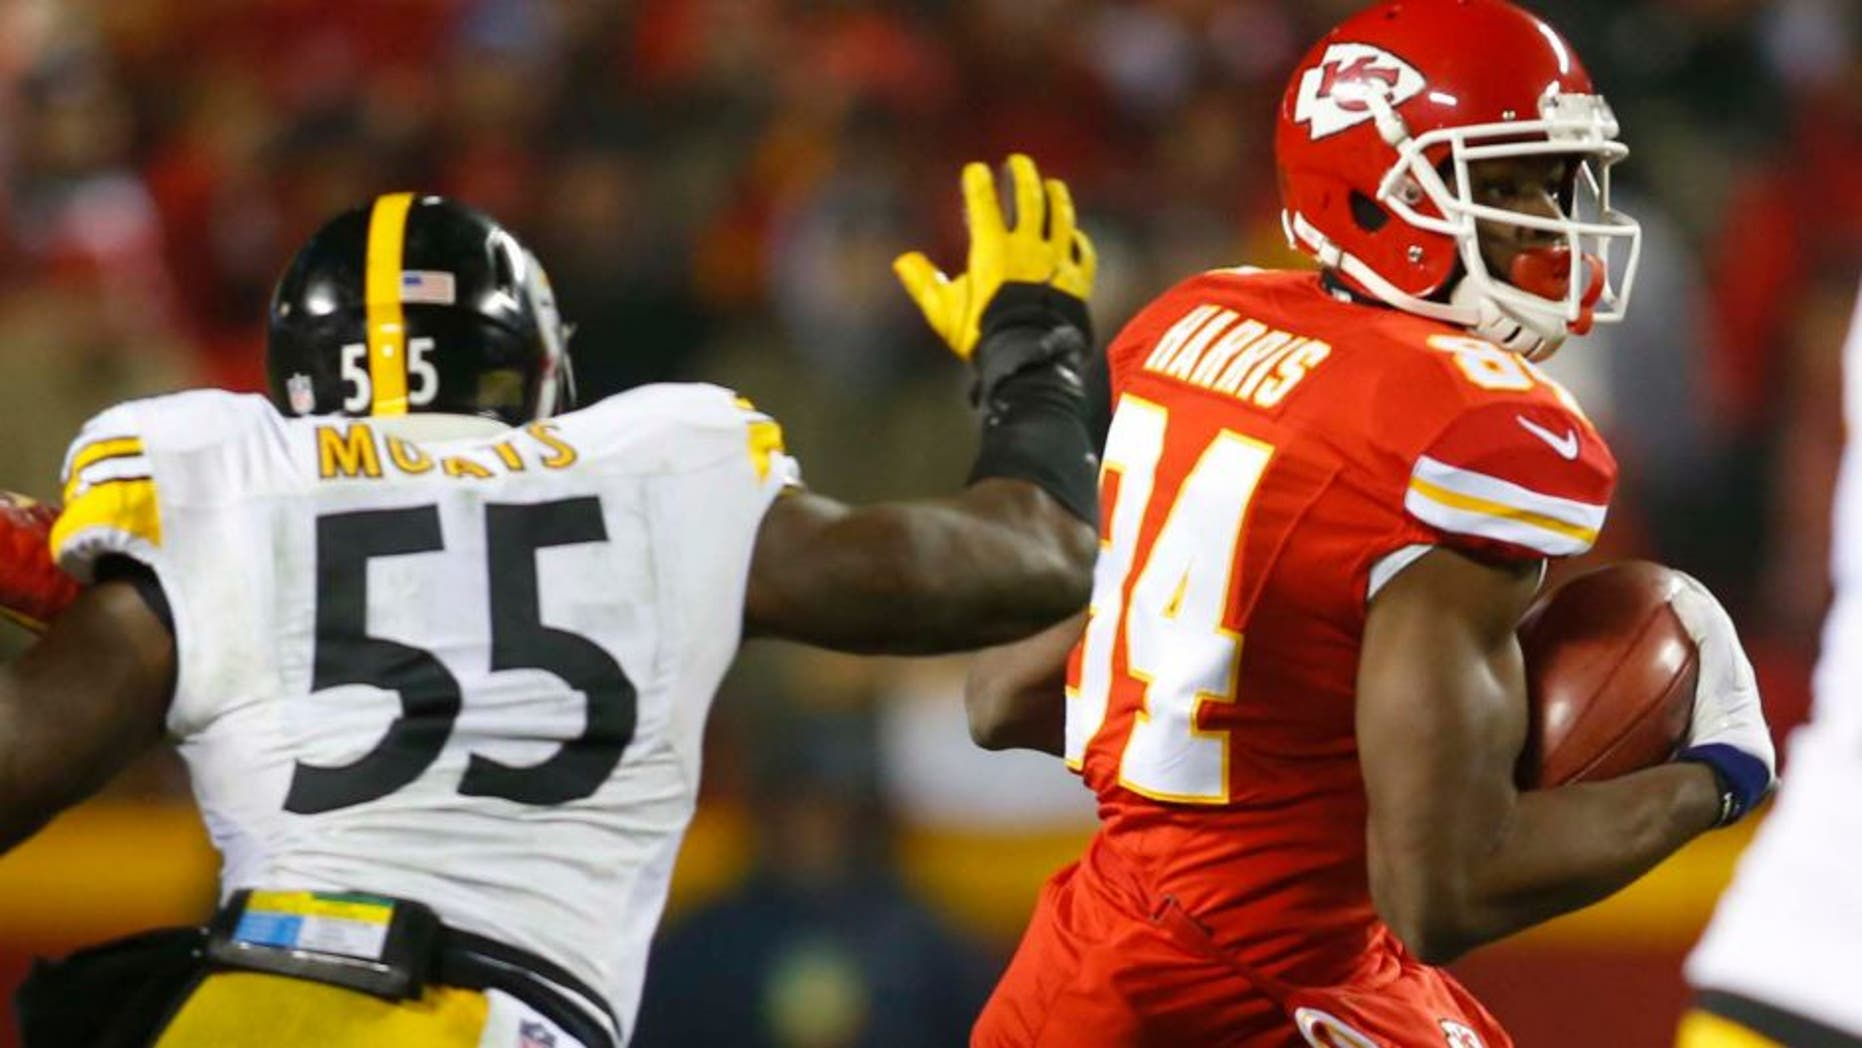 Jan 15, 2017; Kansas City, MO, USA; Kansas City Chiefs tight end Demetrius Harris (84) runs the ball ahead of Pittsburgh Steelers outside linebacker Arthur Moats (55) during the first quarter in the AFC Divisional playoff game at Arrowhead Stadium. Mandatory Credit: Jay Biggerstaff-USA TODAY Sports